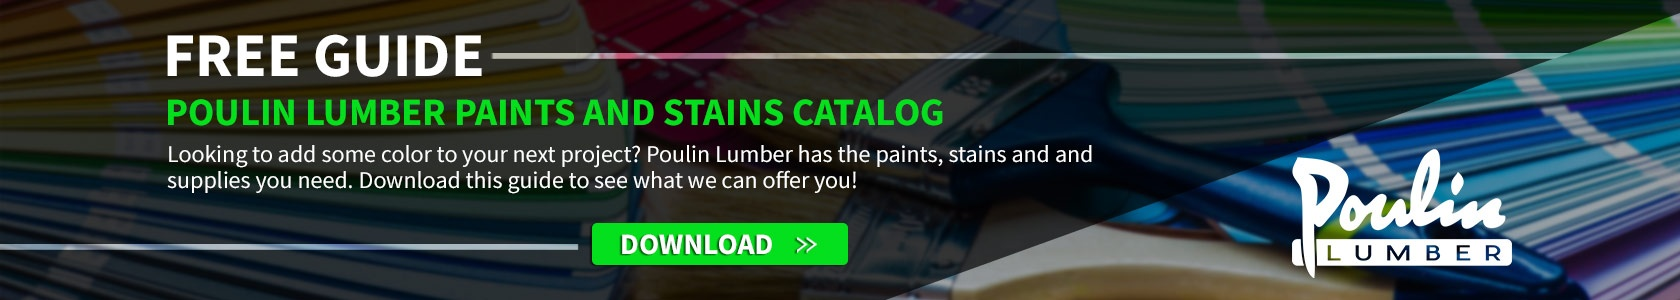 Free guide to Poulin Lumber's paints and stains